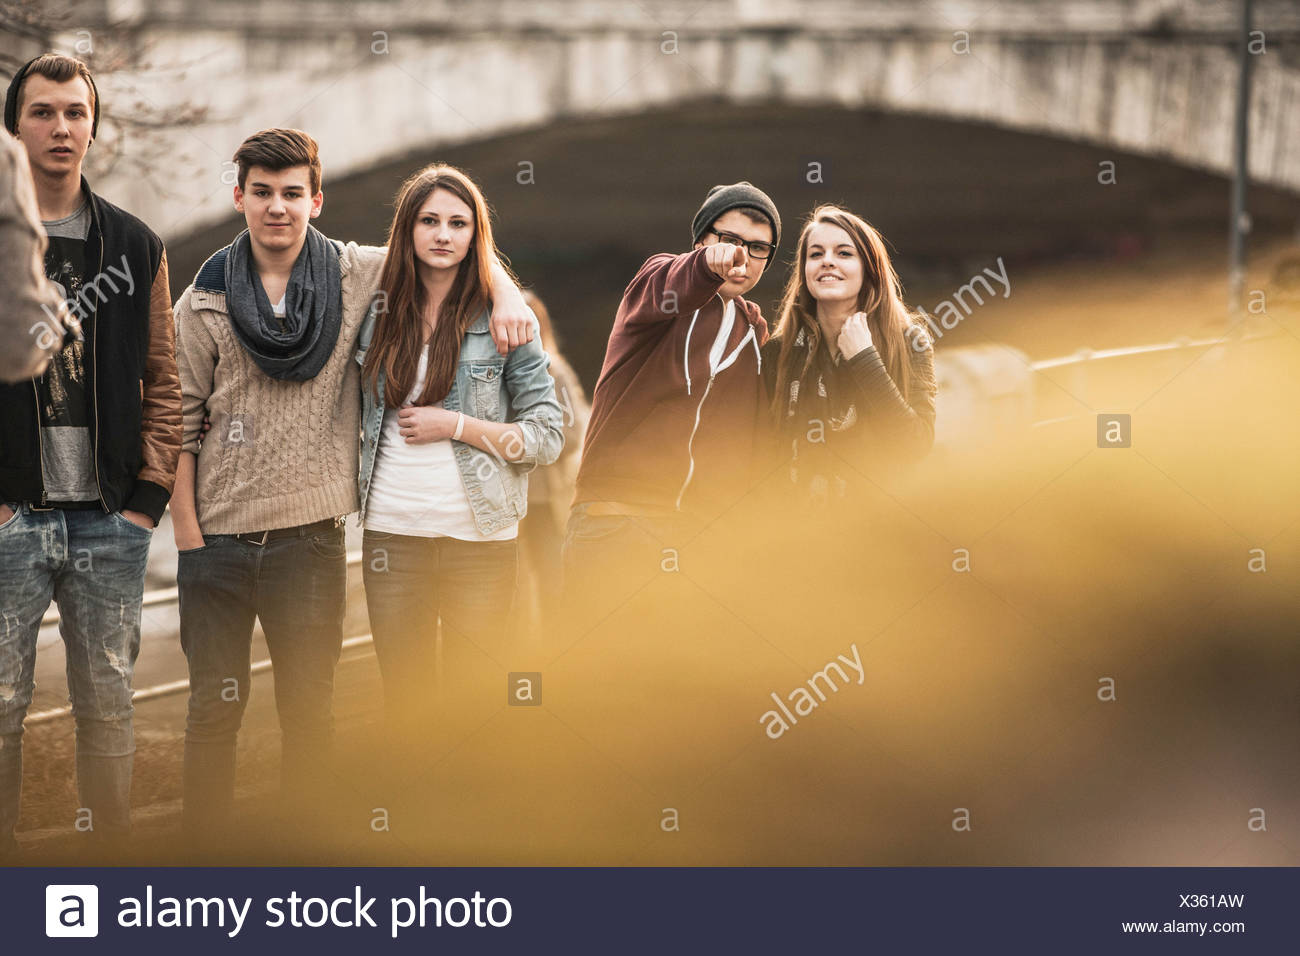 Five teenagers outdoors, boy pointing at camera - Stock Image